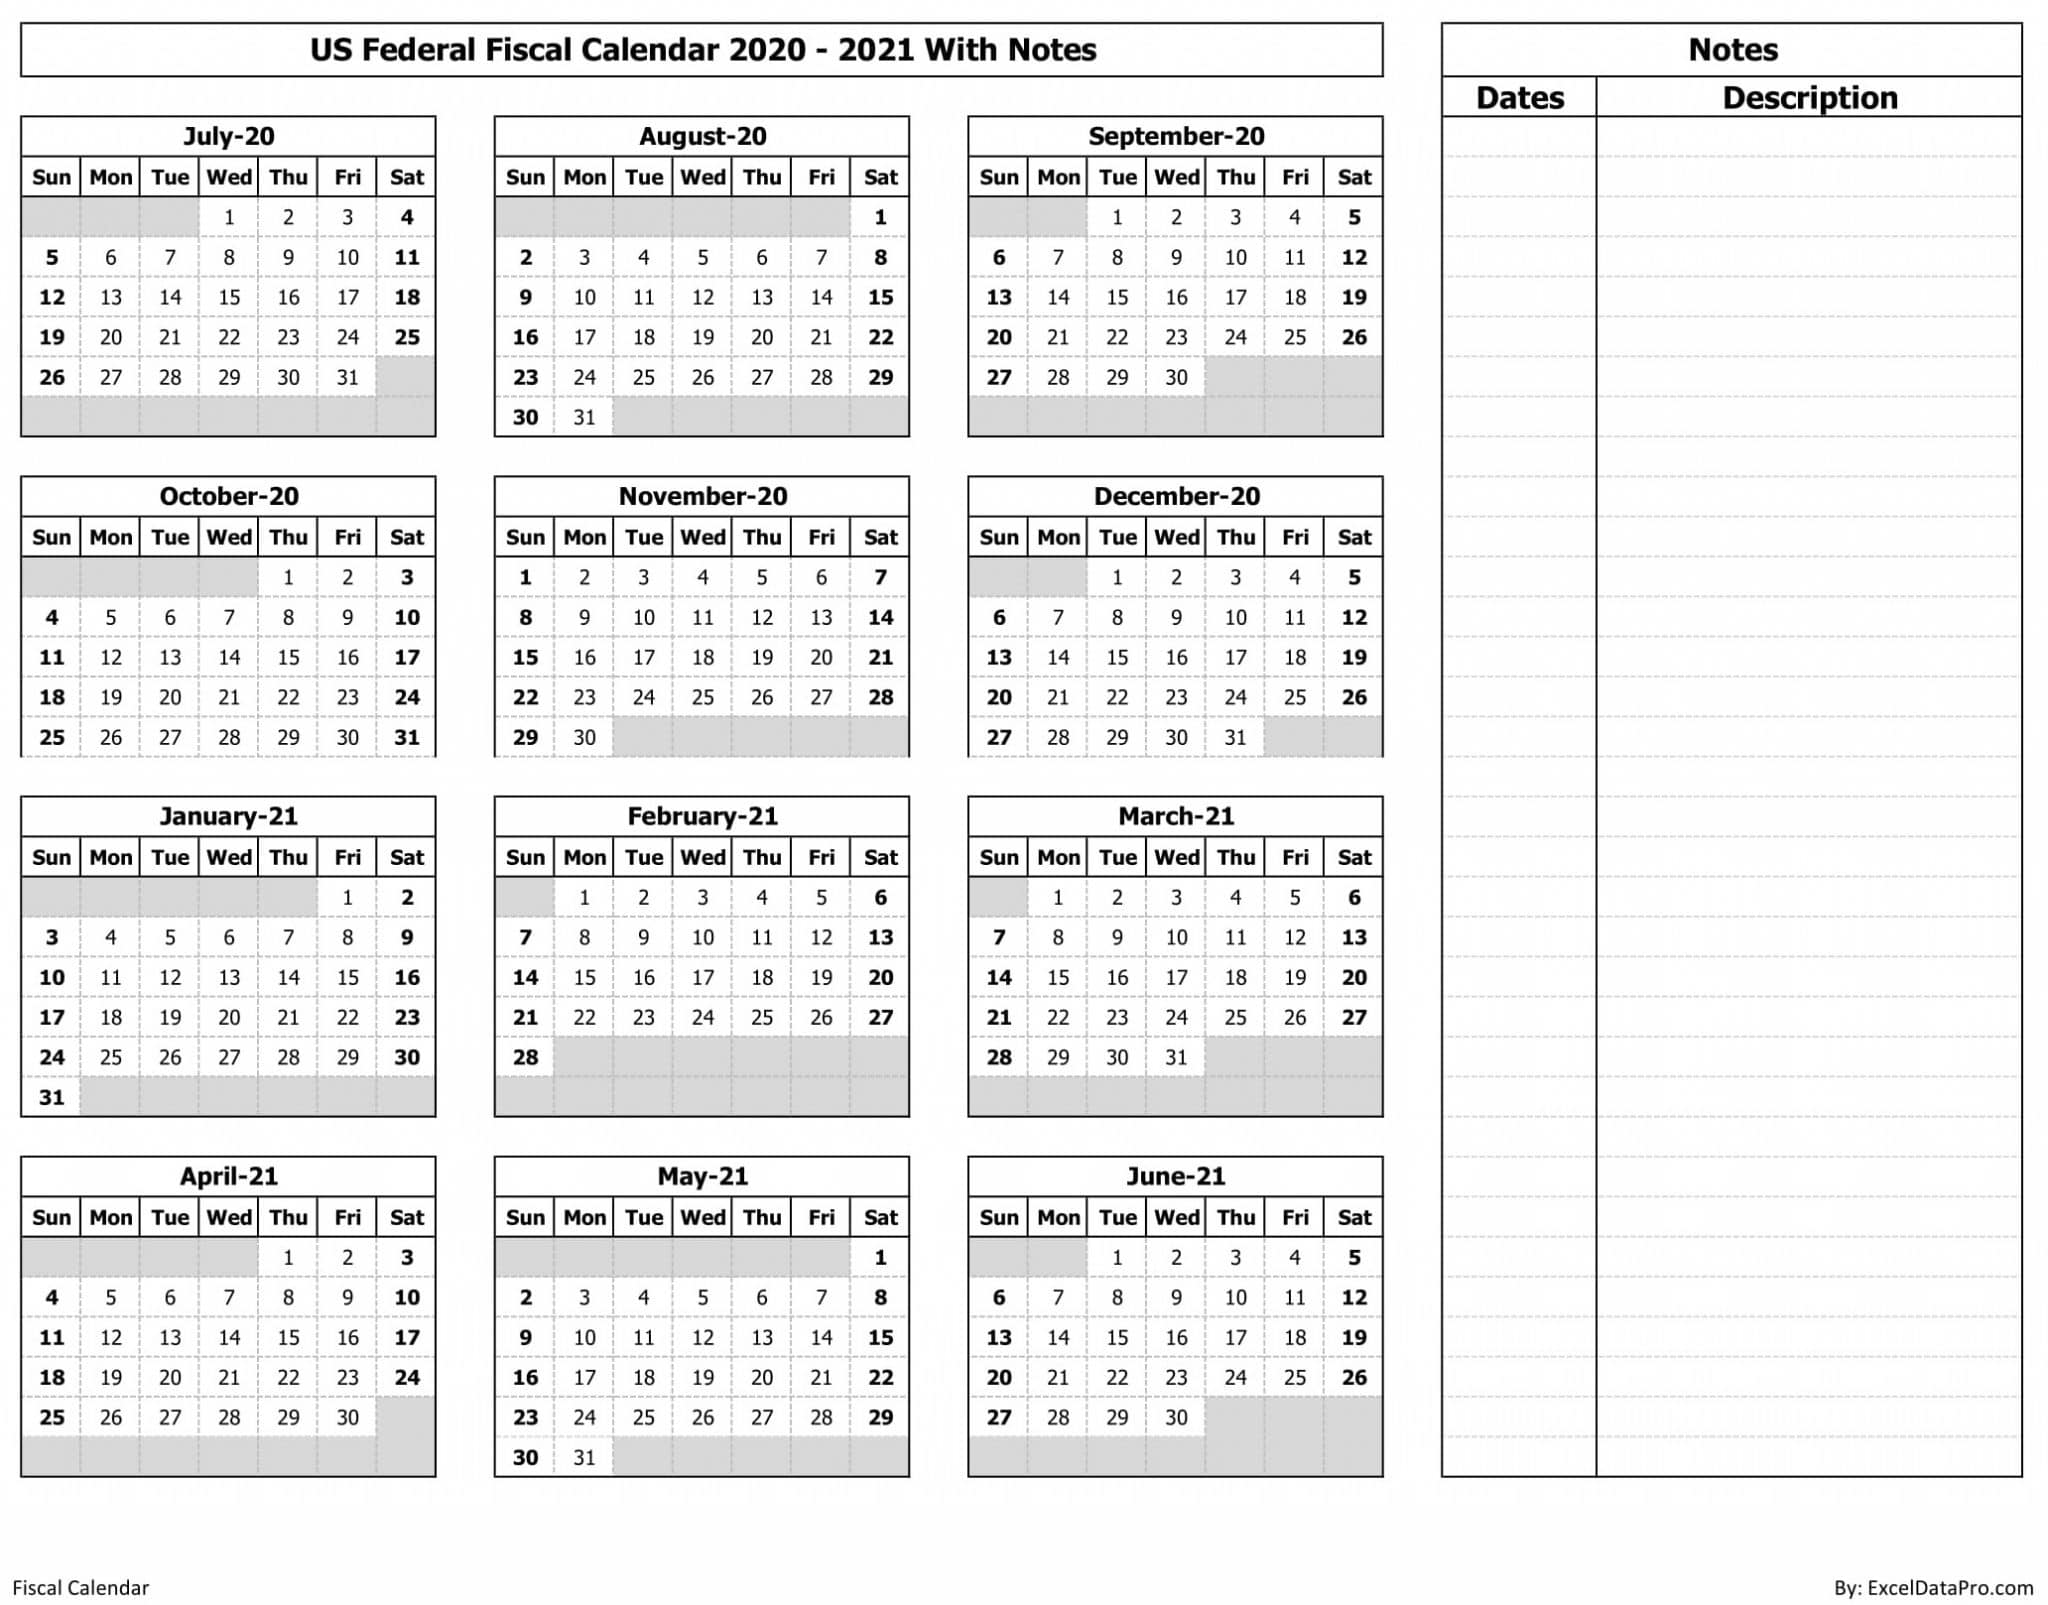 US Federal Fiscal Calendar 2020-21 With Notes - Ink Saver